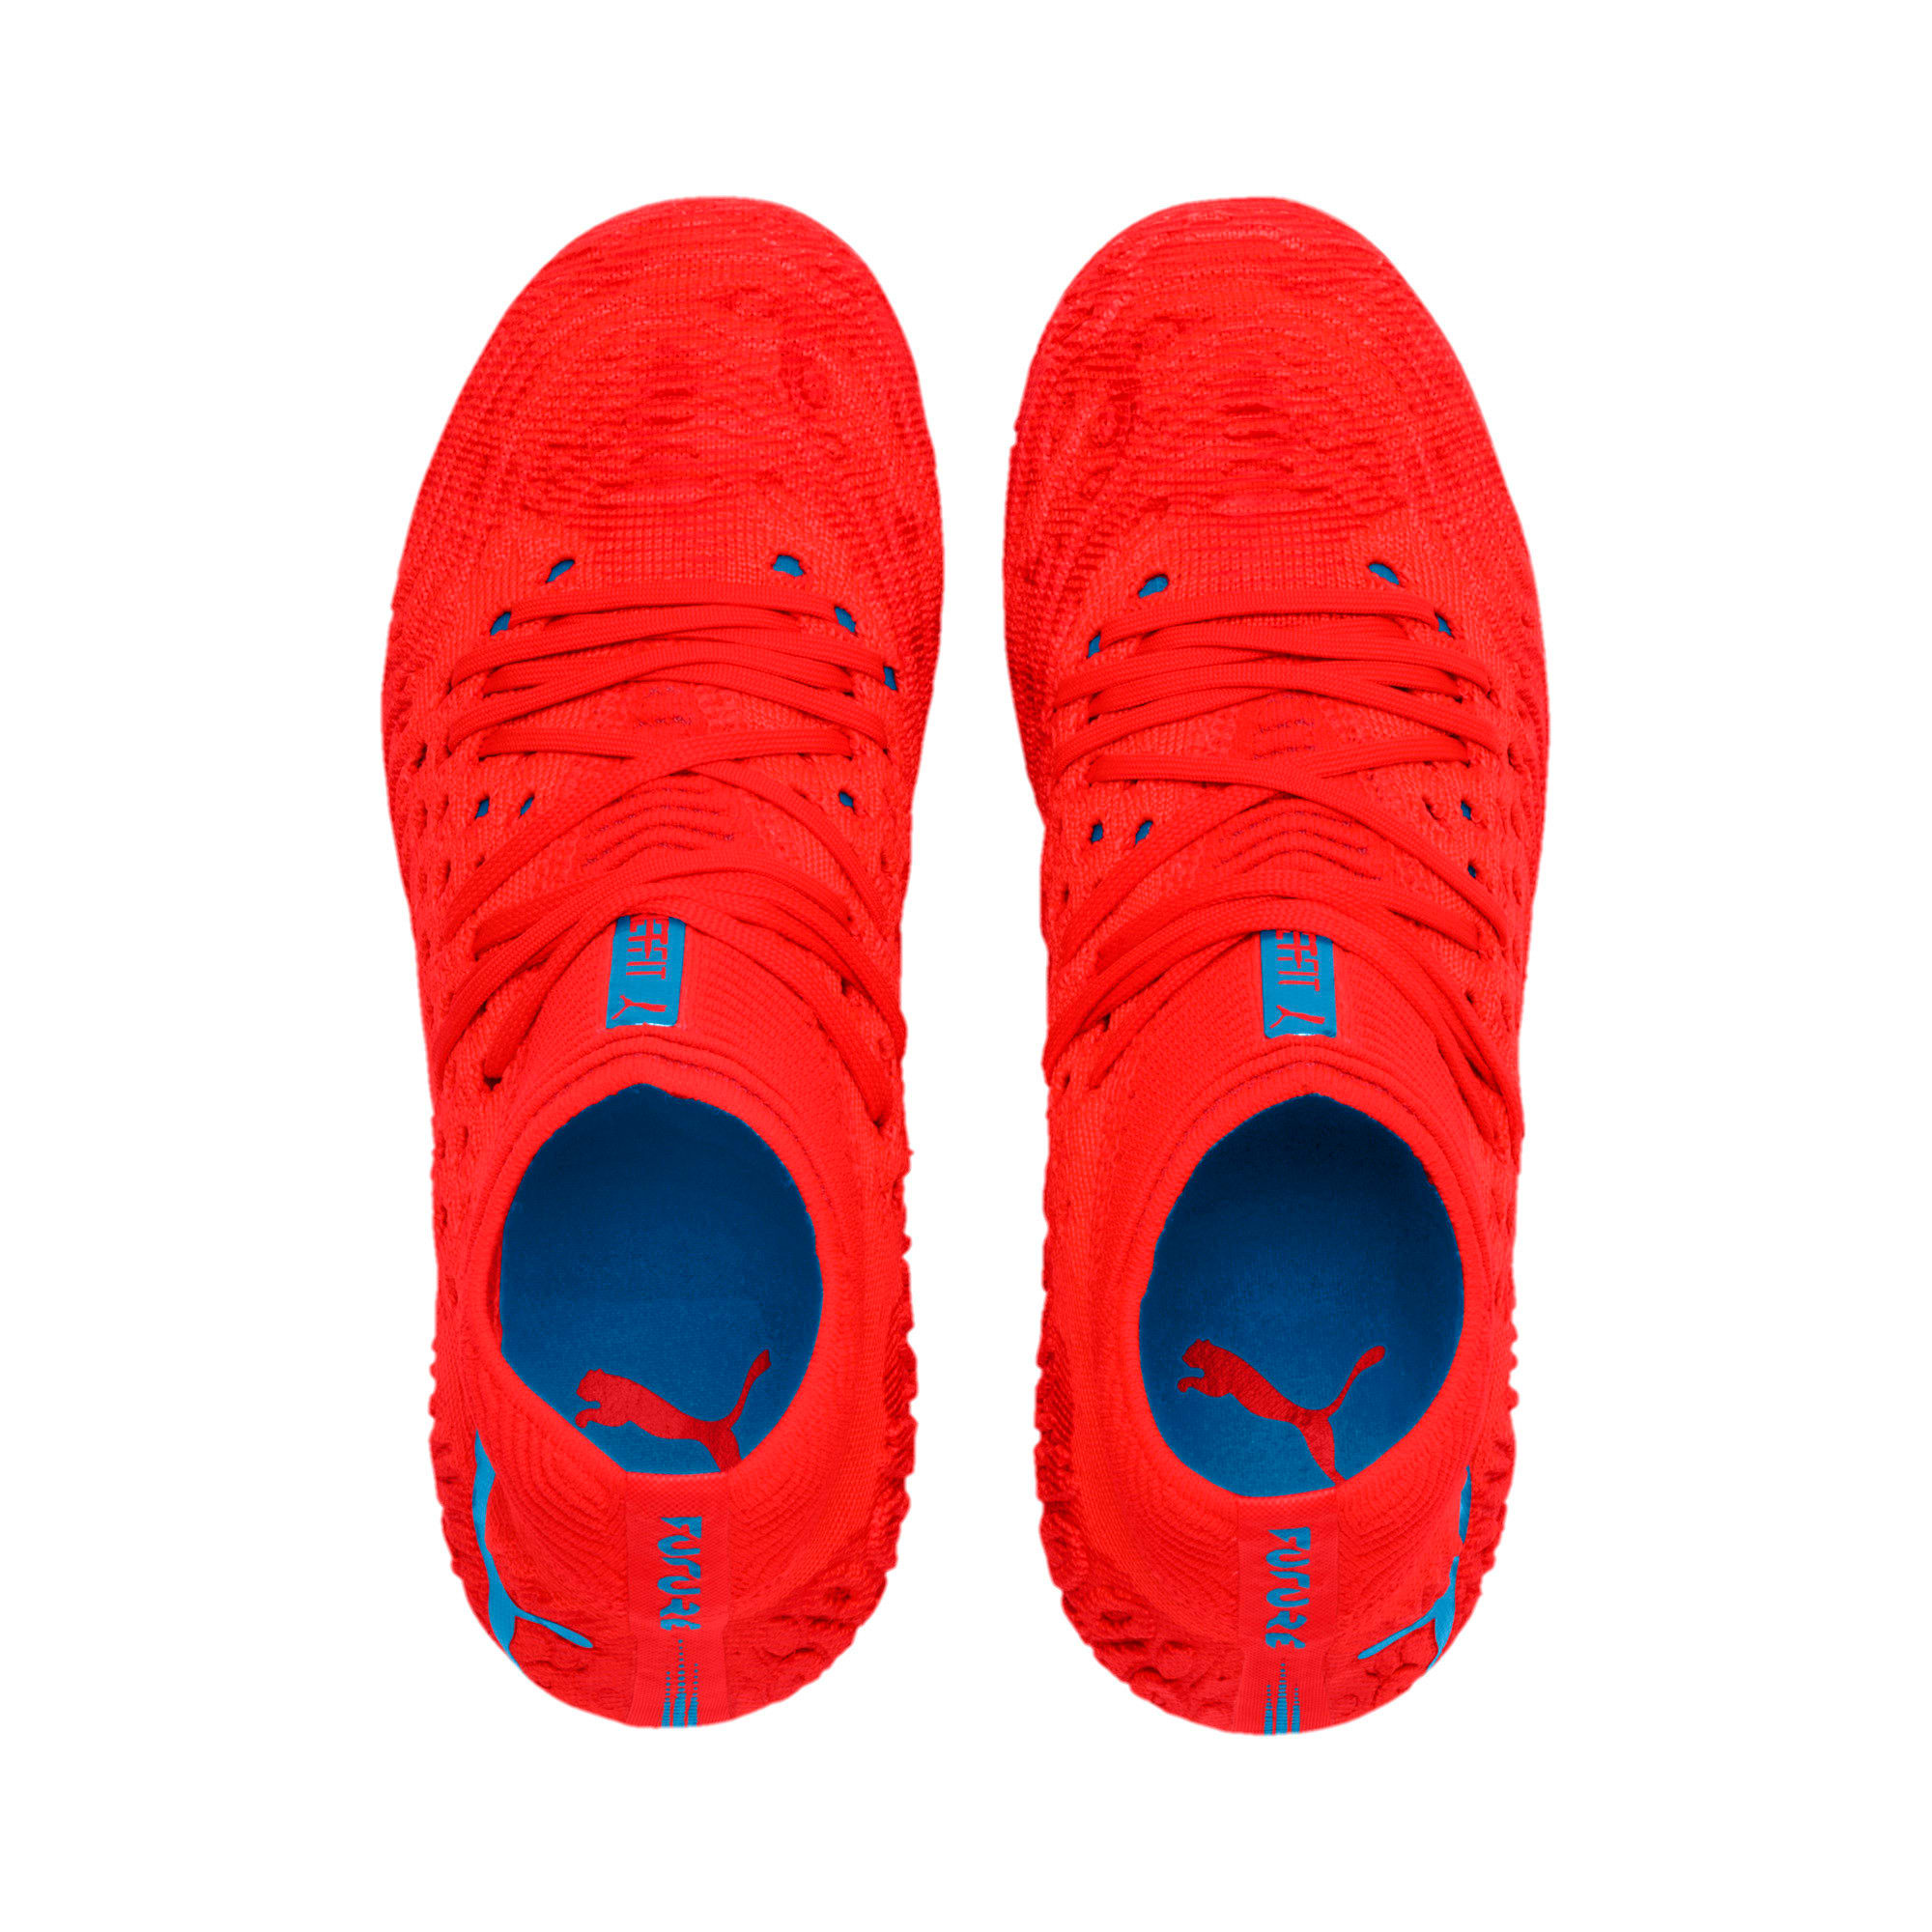 Thumbnail 6 of FUTURE 19.1 NETFIT FG/AG Soccer Cleats JR, Red Blast-Bleu Azur, medium